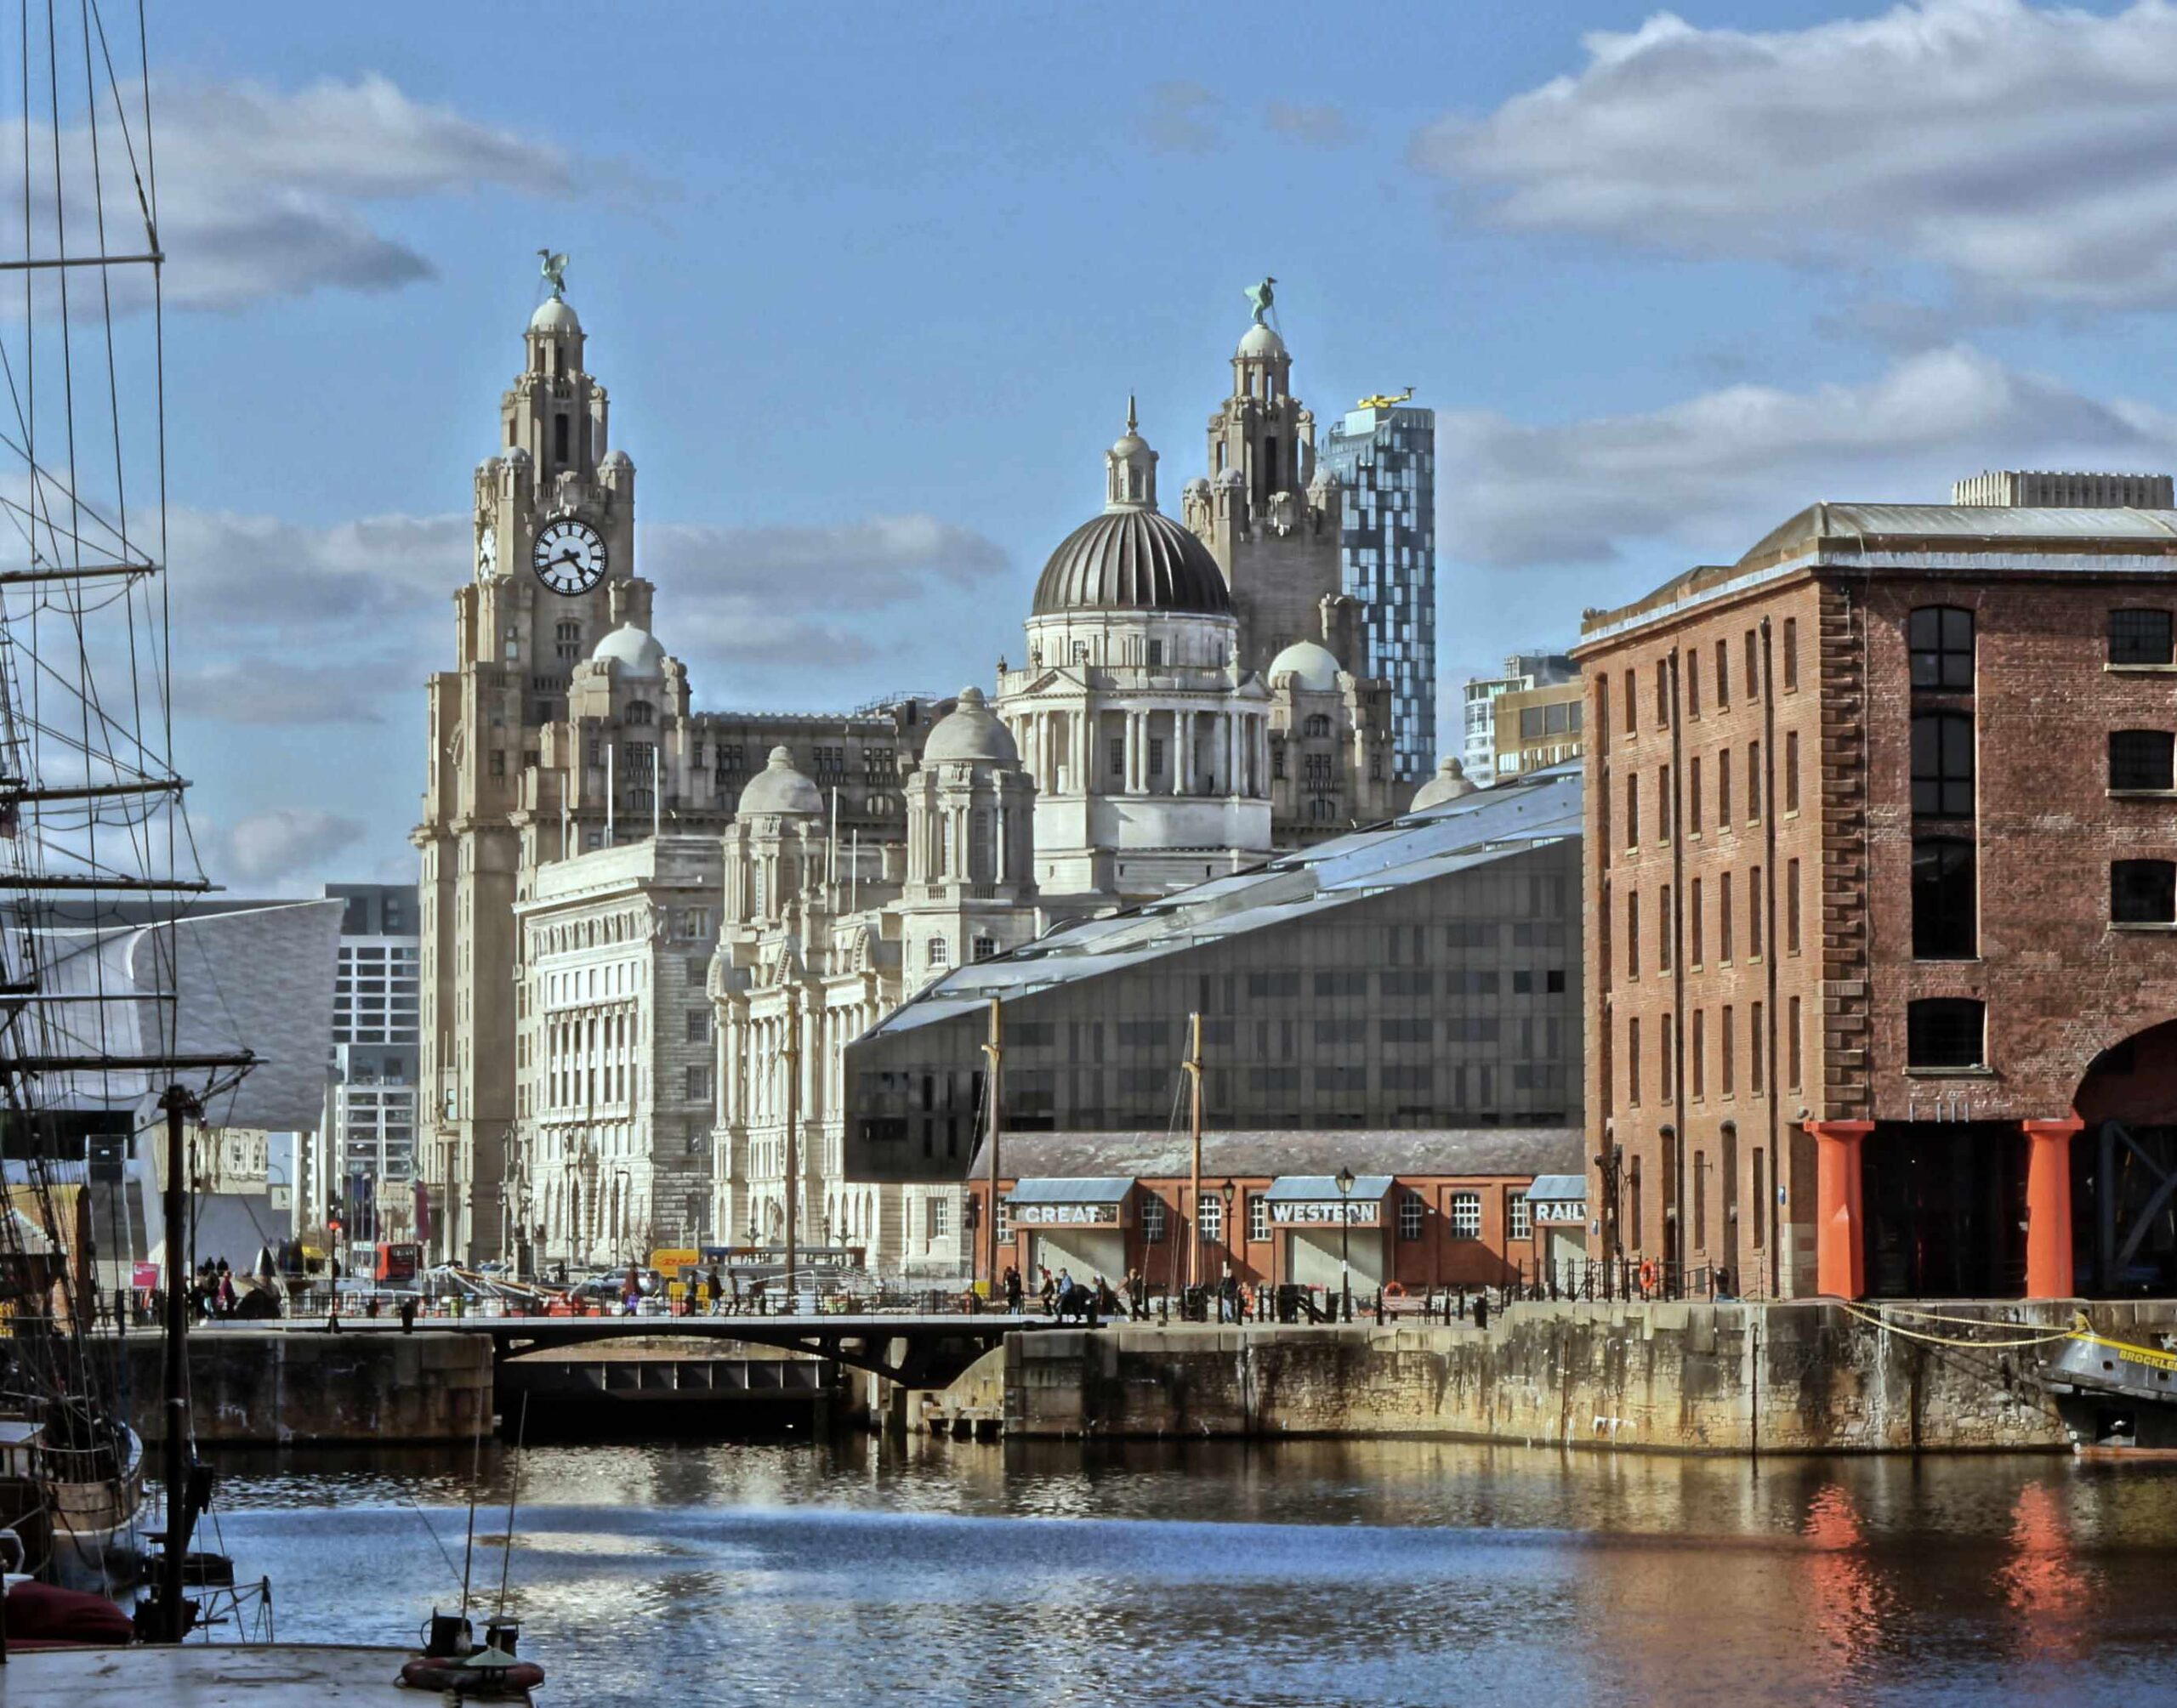 Things to do in Liverpool - This is a copyright free photo